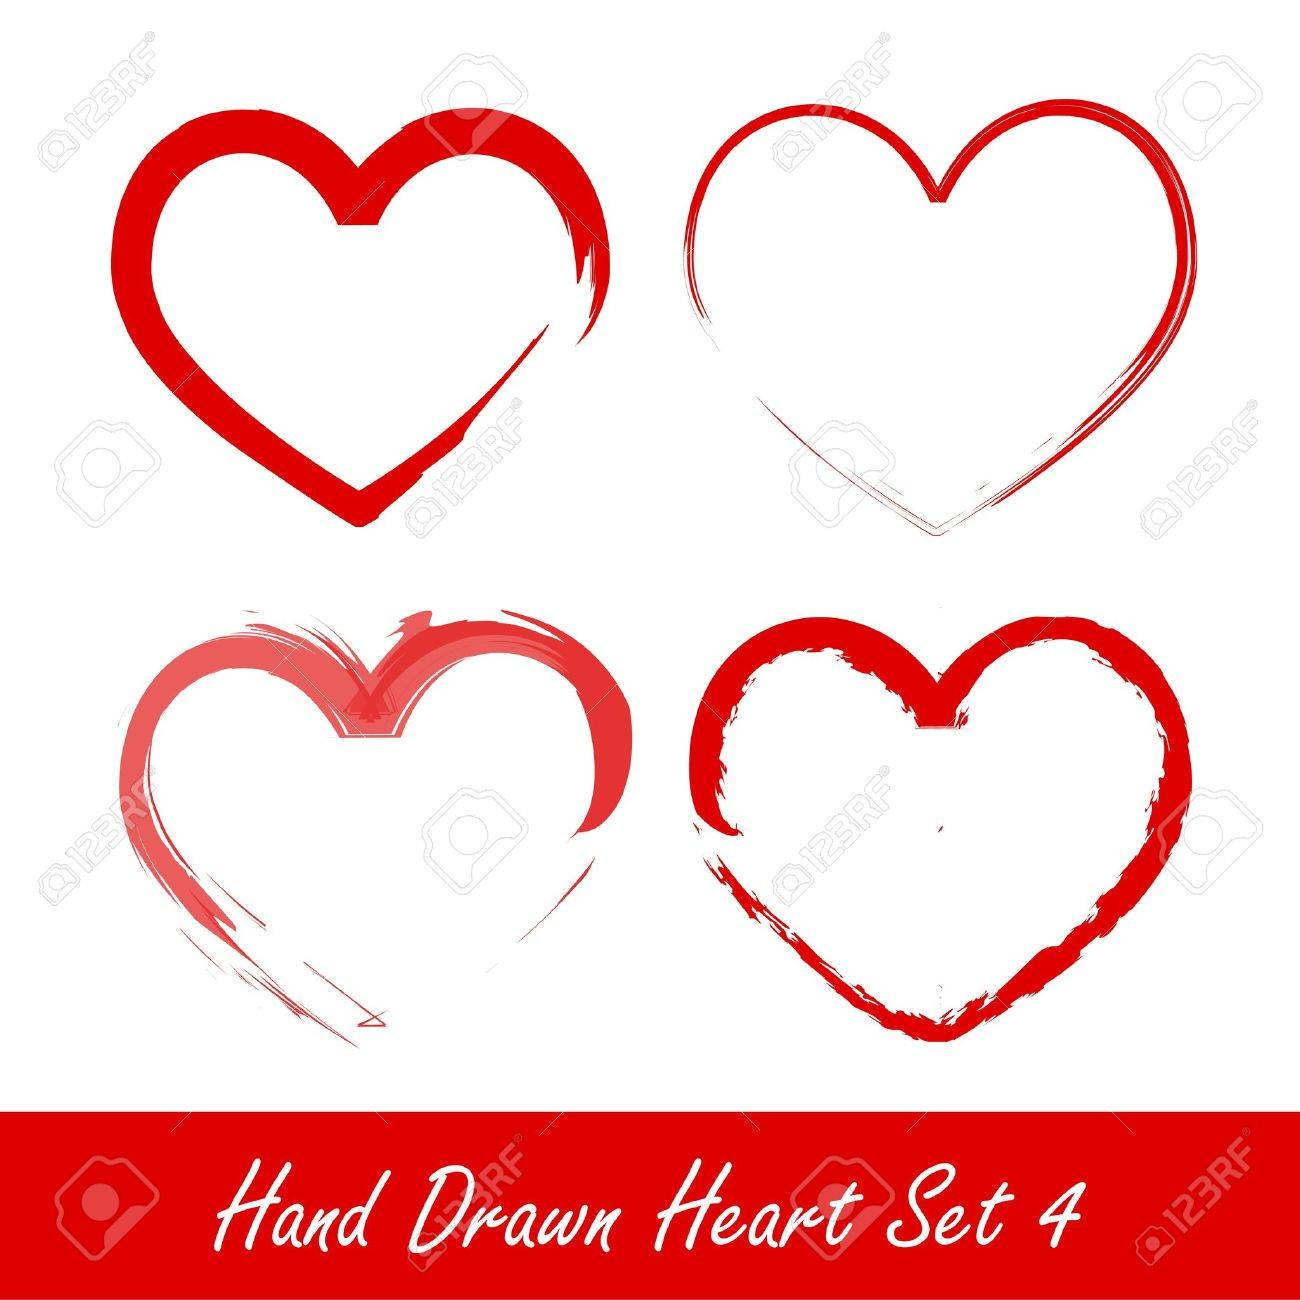 Hand drawn heart set 4 Stock Vector - 11893497